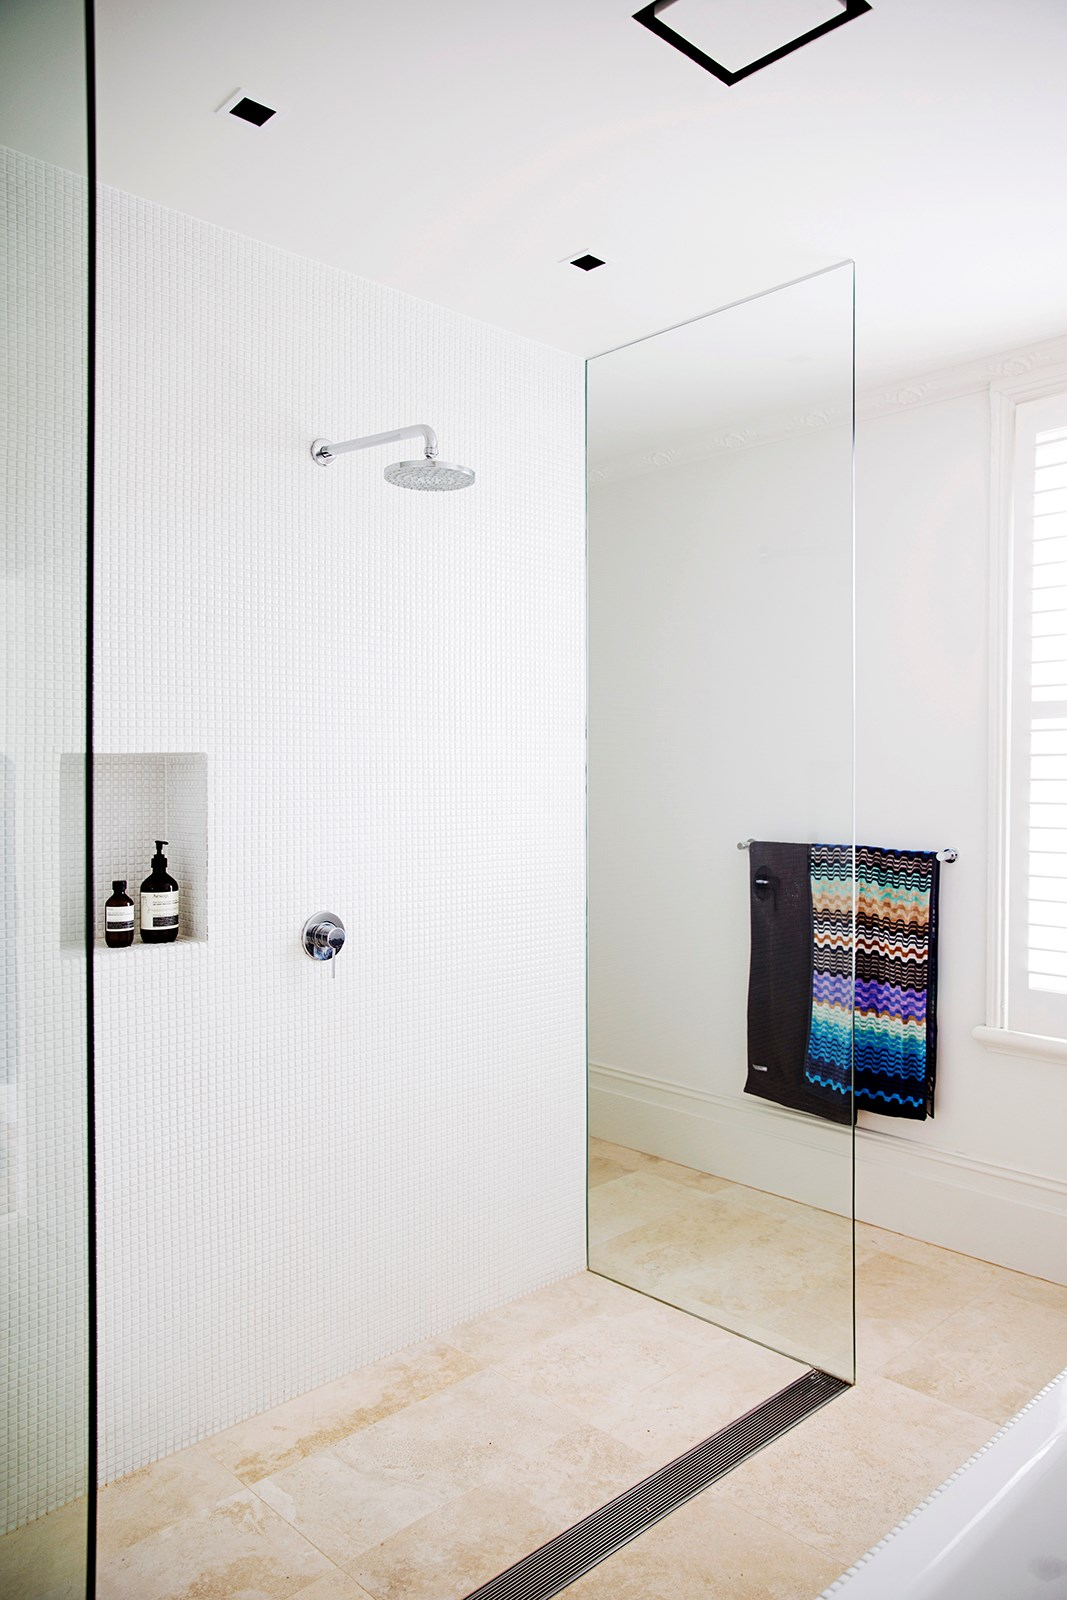 Design and functionality are crucial to any bathroom renovation. *Photo: Chris Warne*